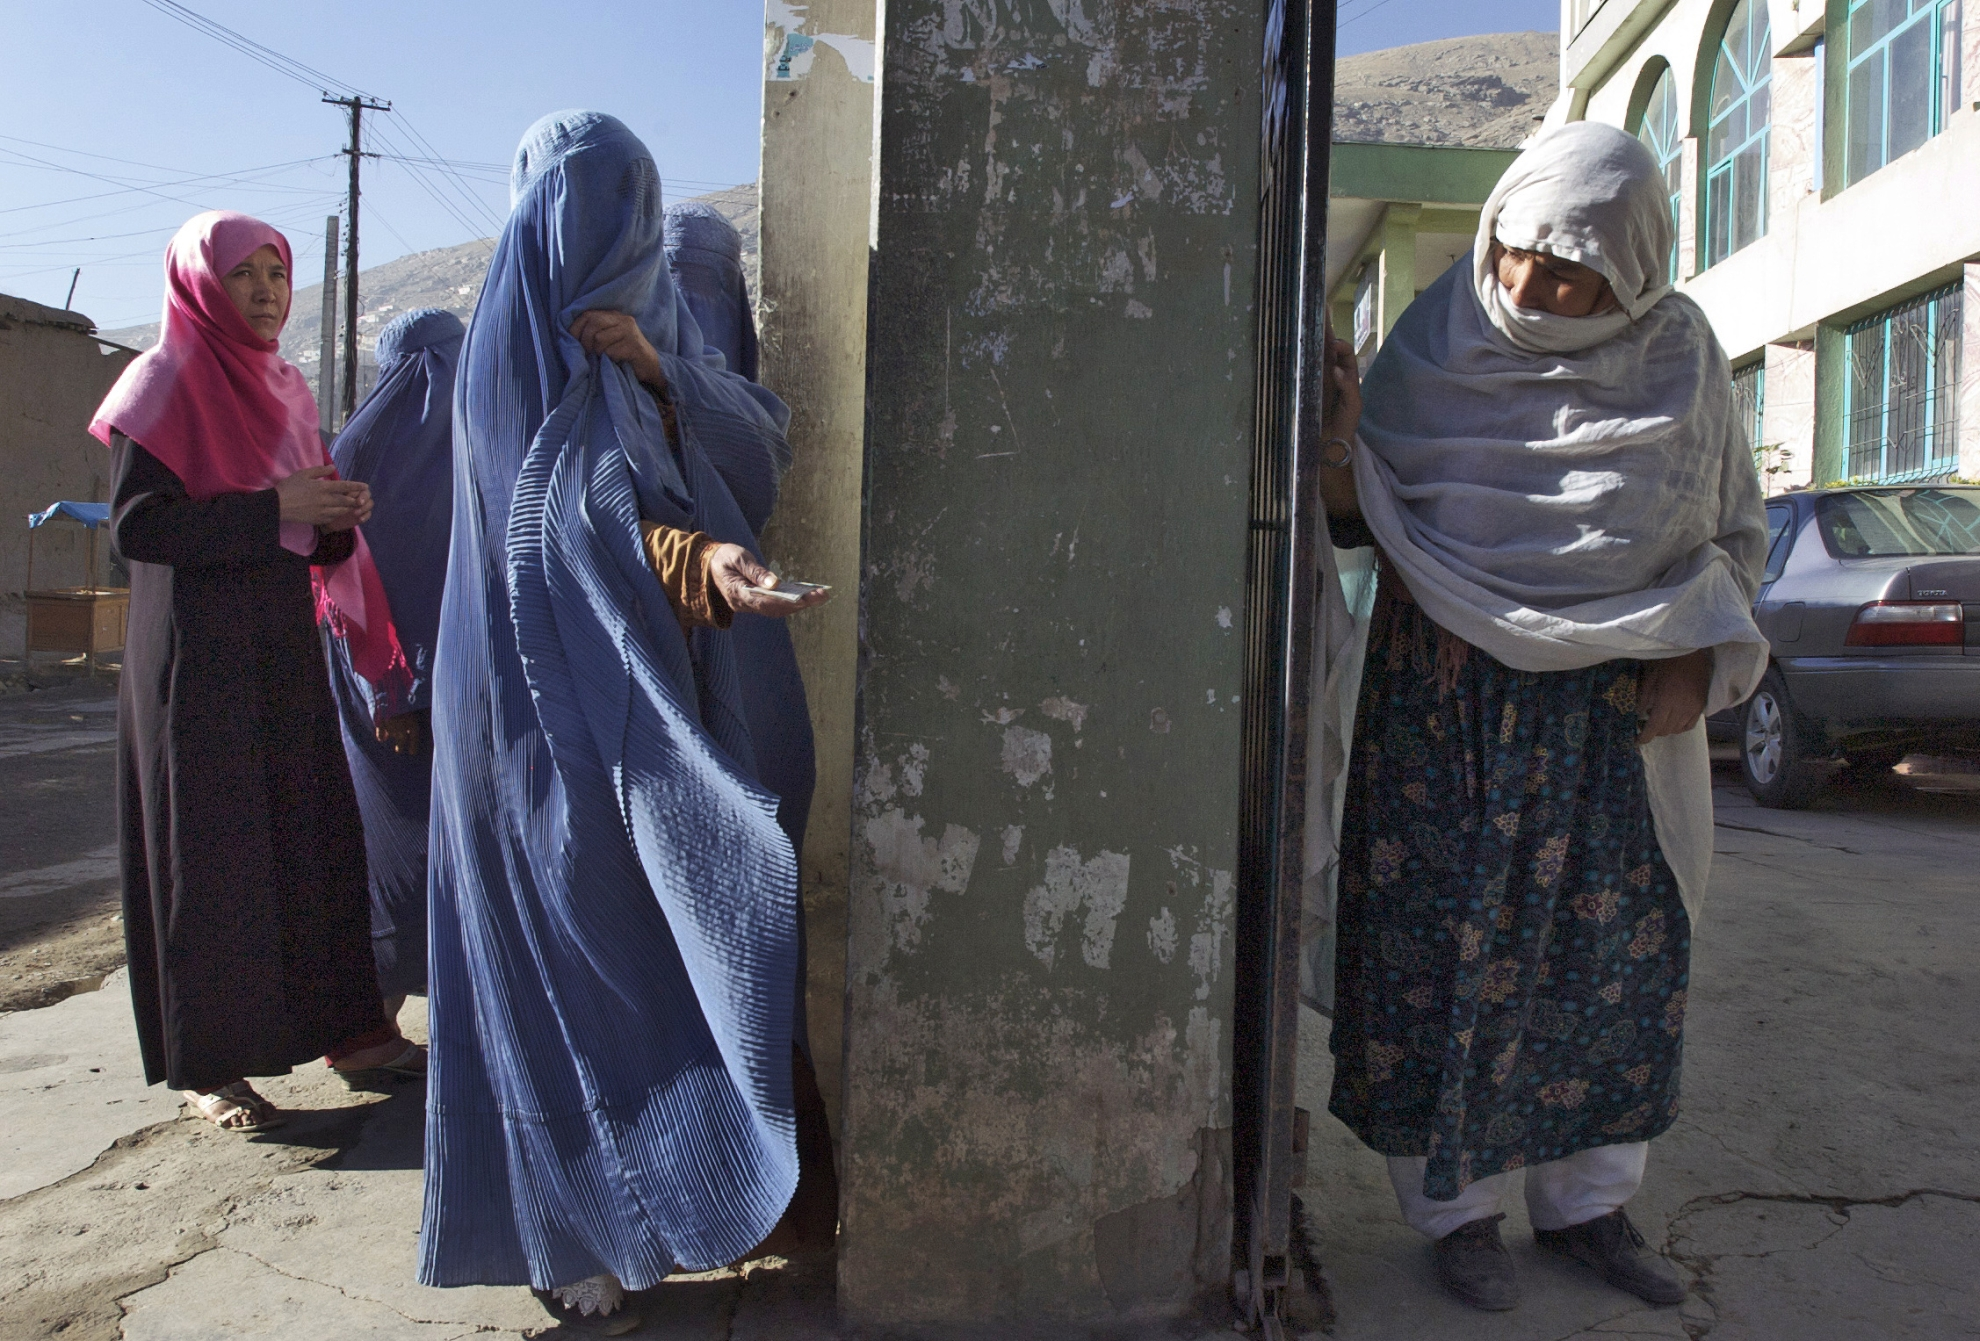 Women at the polling booth, 2009. Elections in Afghanistan have thus far been characterised by very low participation of women. In the 2005 election, only 10 percent of the registered voters were women. Photo: UN Photo/Eric Kanalstein